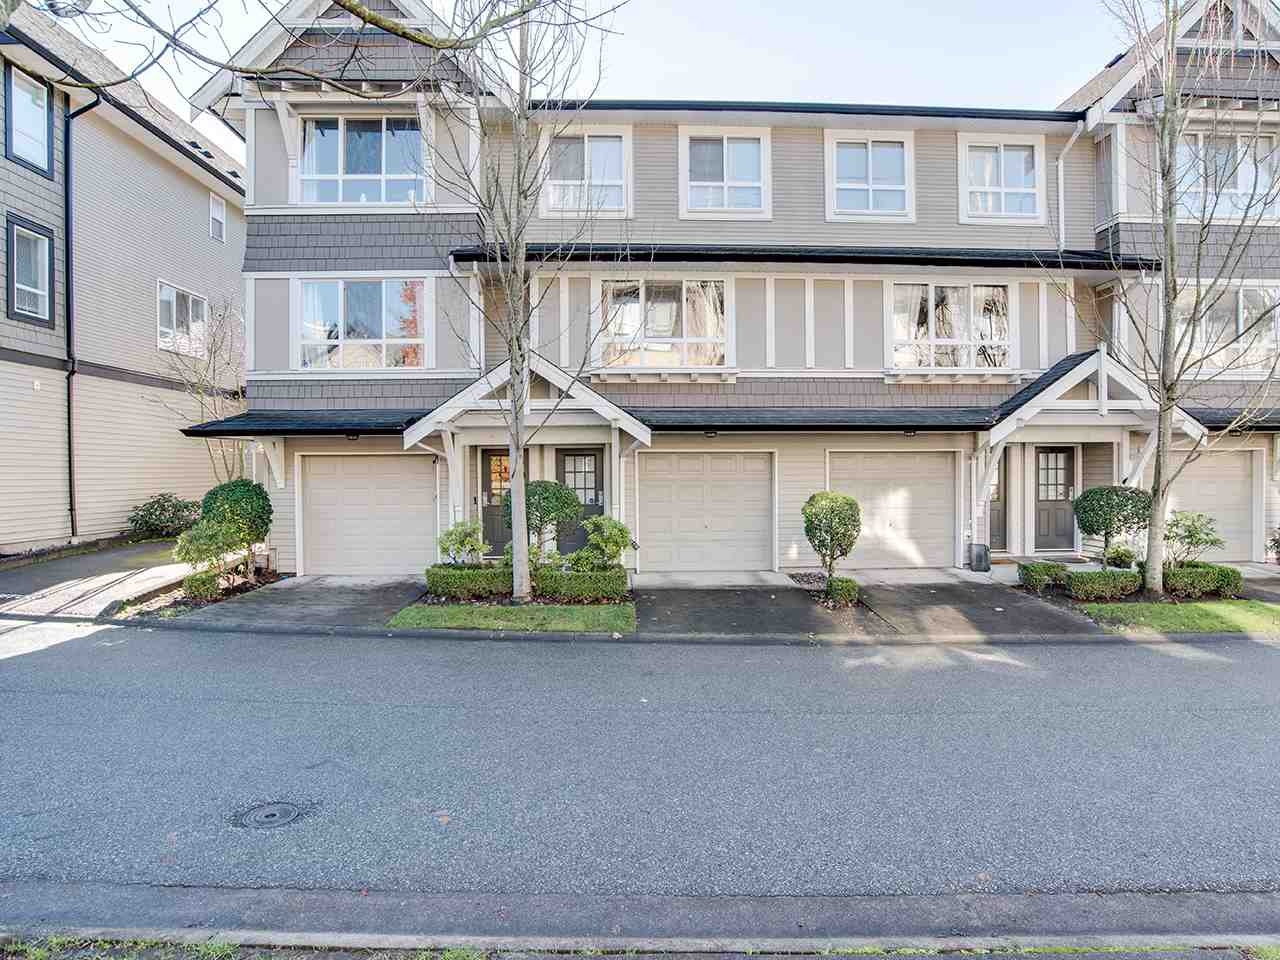 "Main Photo: 8 6747 203 Street in Langley: Willoughby Heights Townhouse for sale in ""SAGEBROOK"" : MLS®# R2323050"